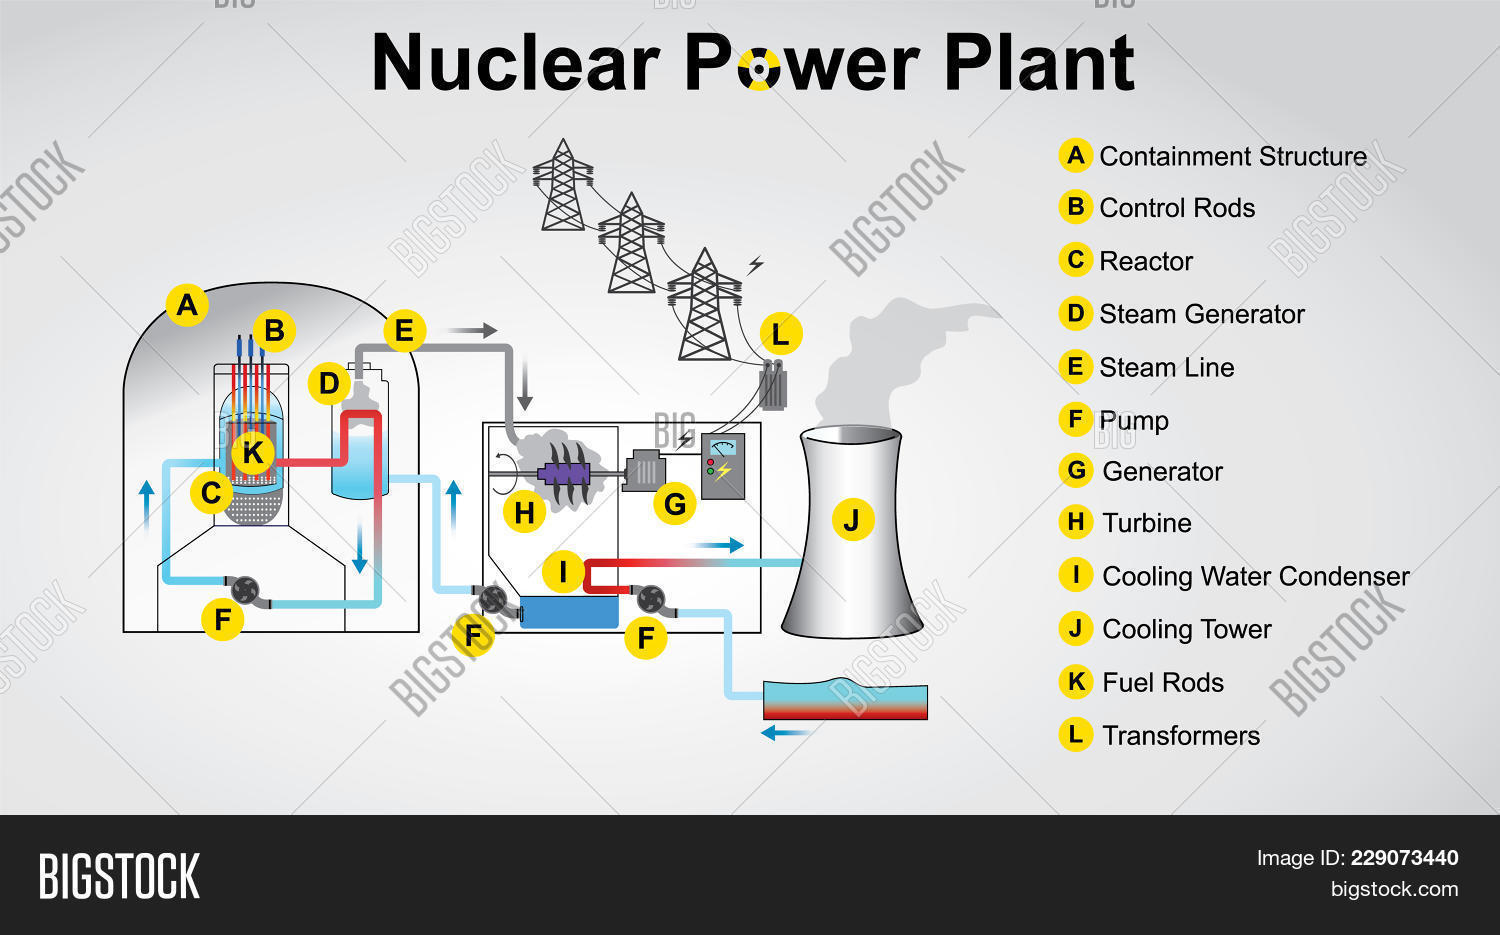 Nuclear Power Plant Image Photo Free Trial Bigstock Line Diagram Technology Infographic Illustration Design